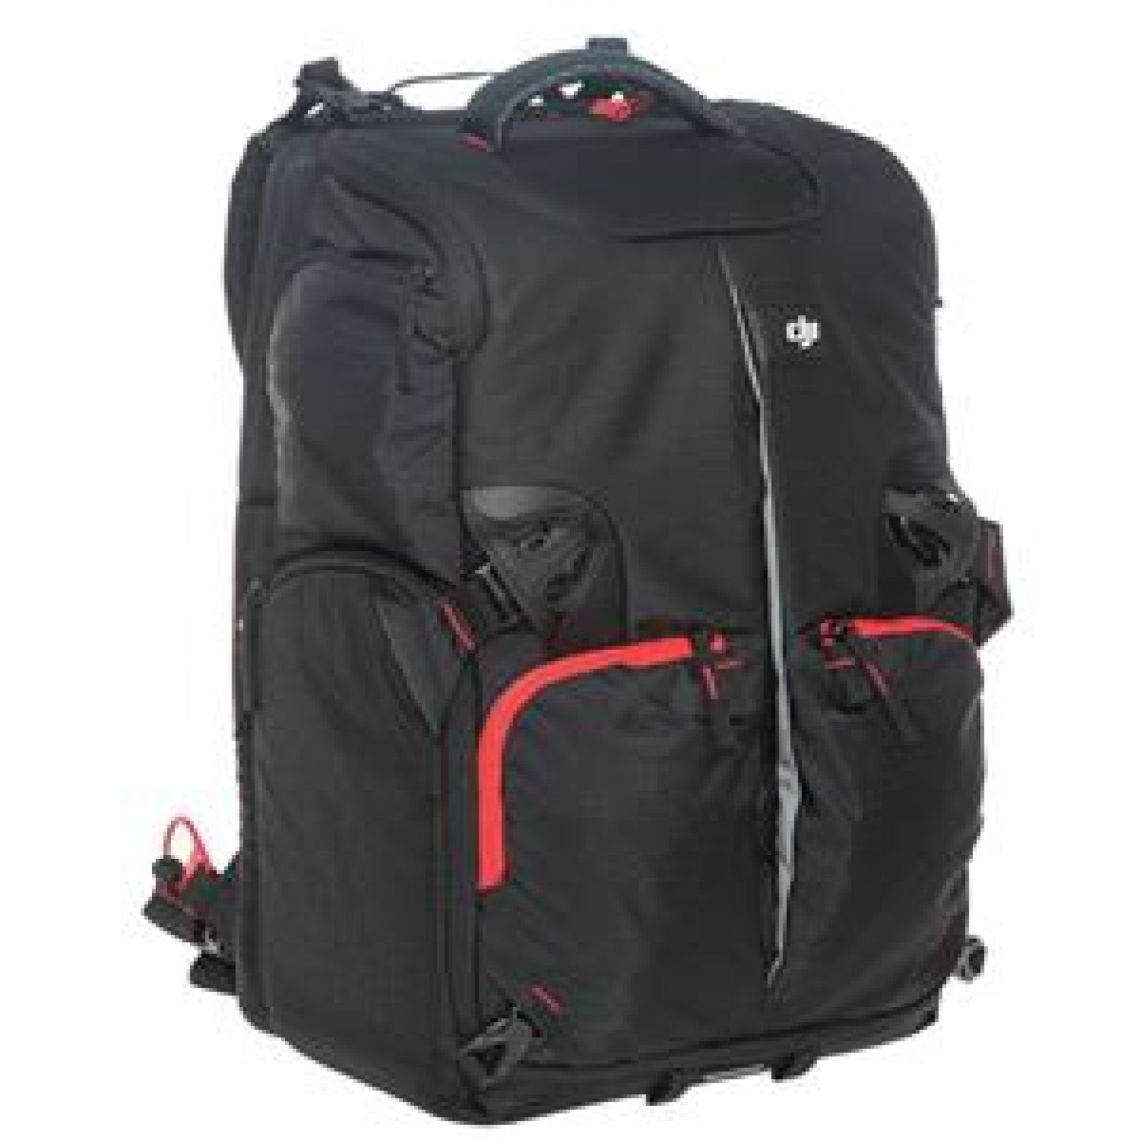 DJI Phantom Backpack, Black/Red BC.QT.000002